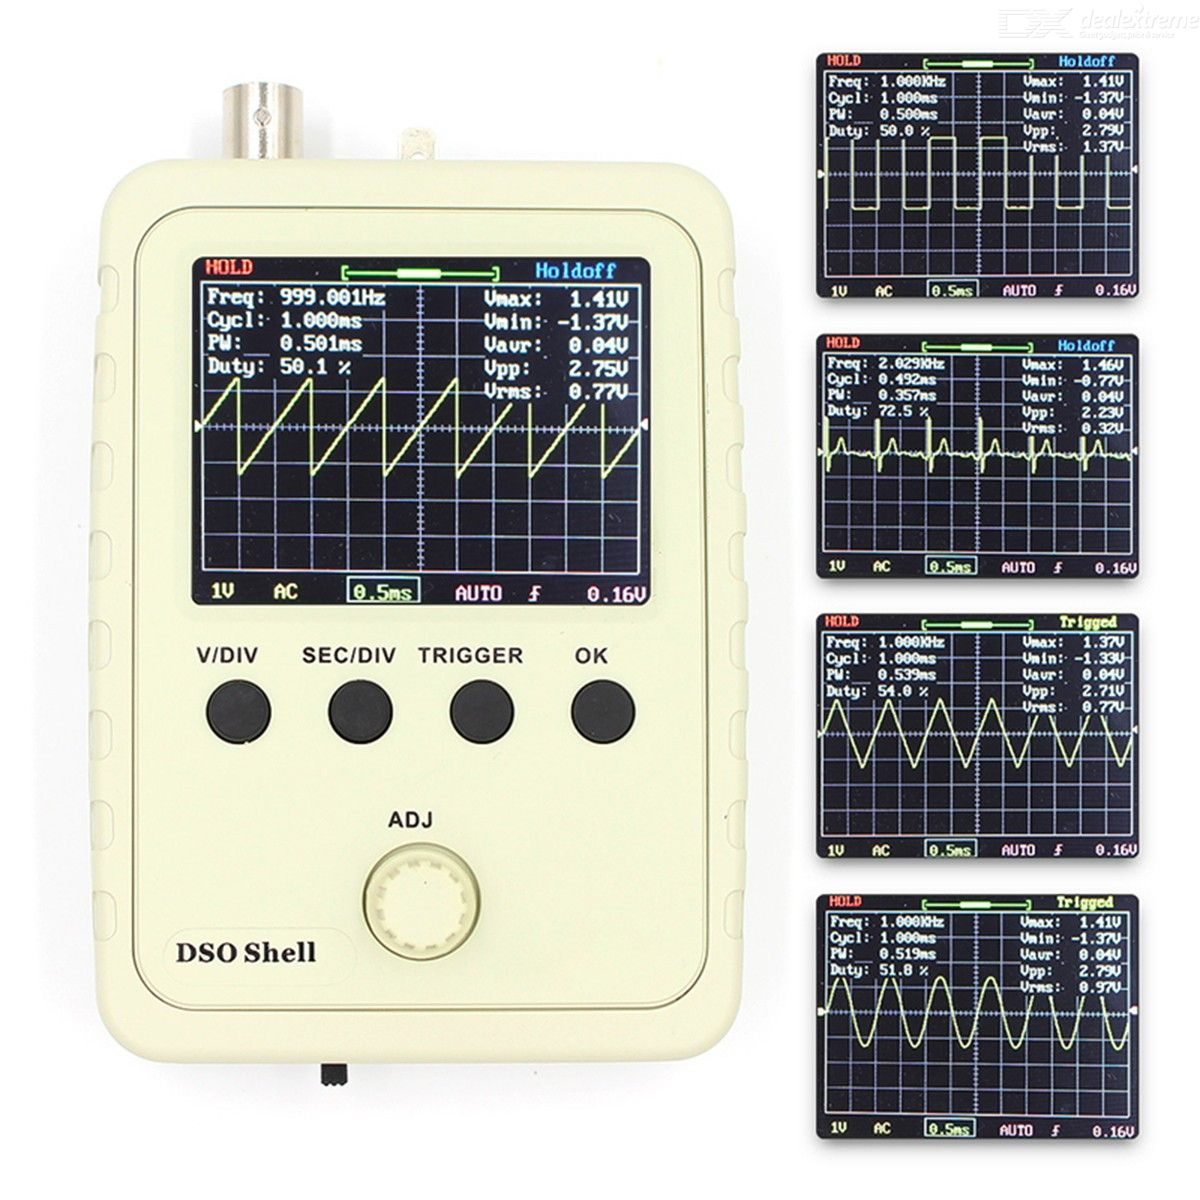 Digital DSO150 15001K DSO-SHELL Electronic Oscilloscope Set With Housing DIY Kit